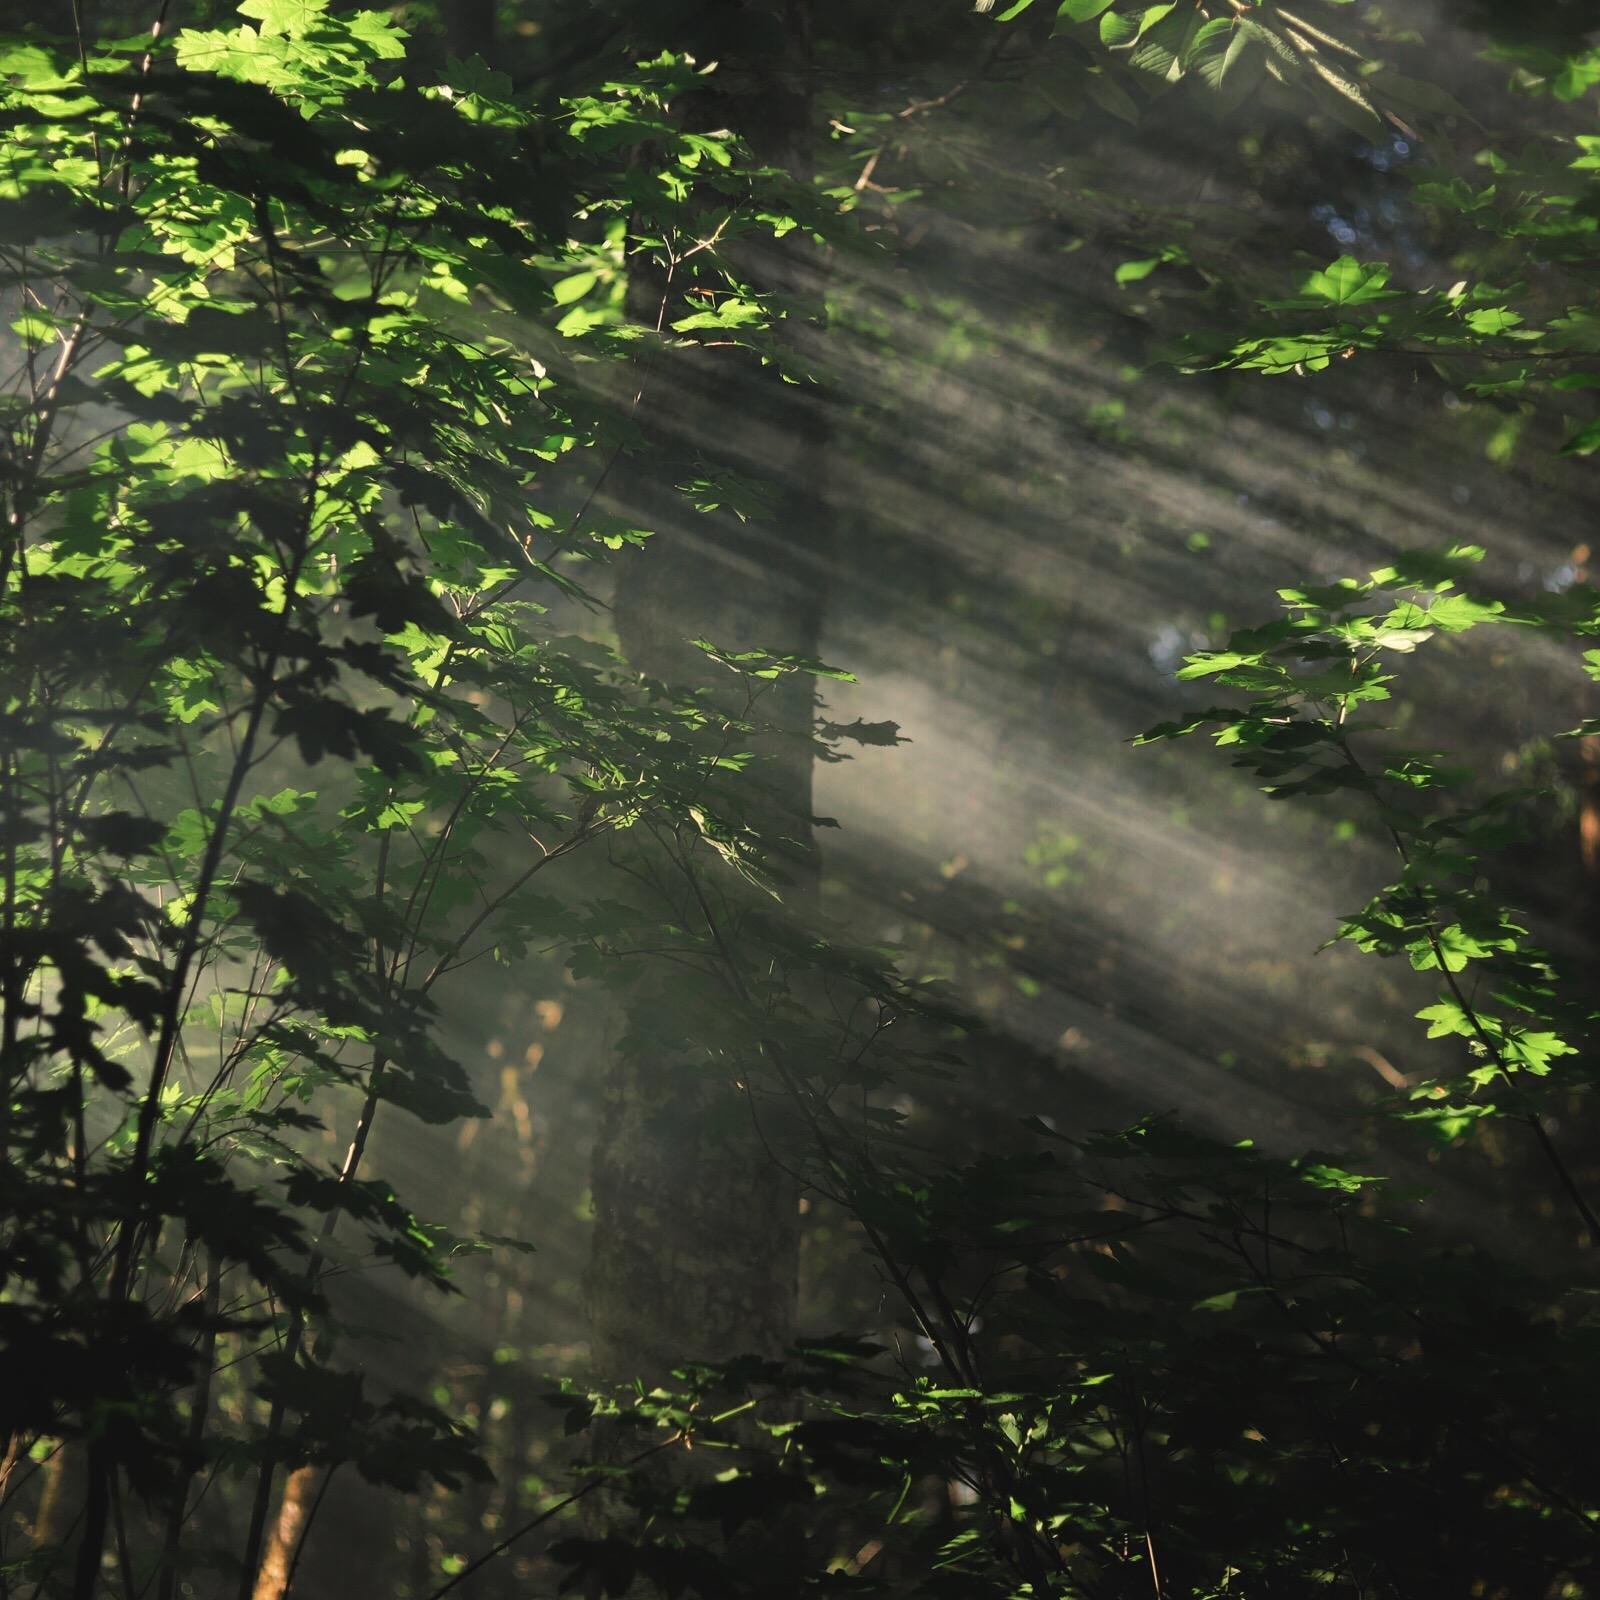 Image of the Rainforest at the Alderbrook Resort & Spa